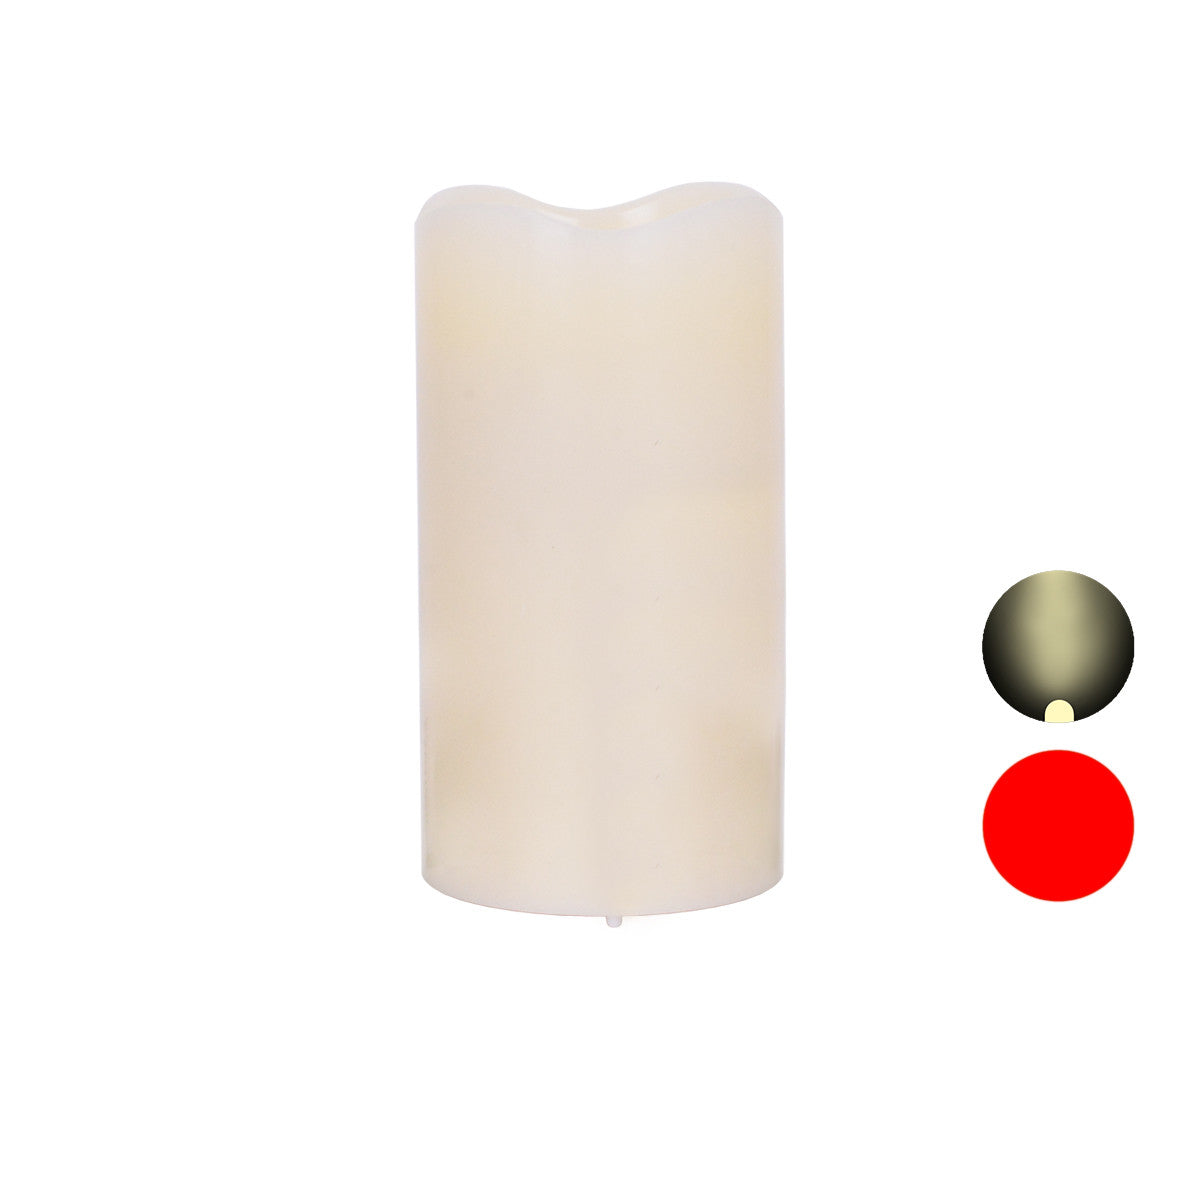 6 Inch Wax Laser and Flickering LED Candle (Non-Rechargeable)